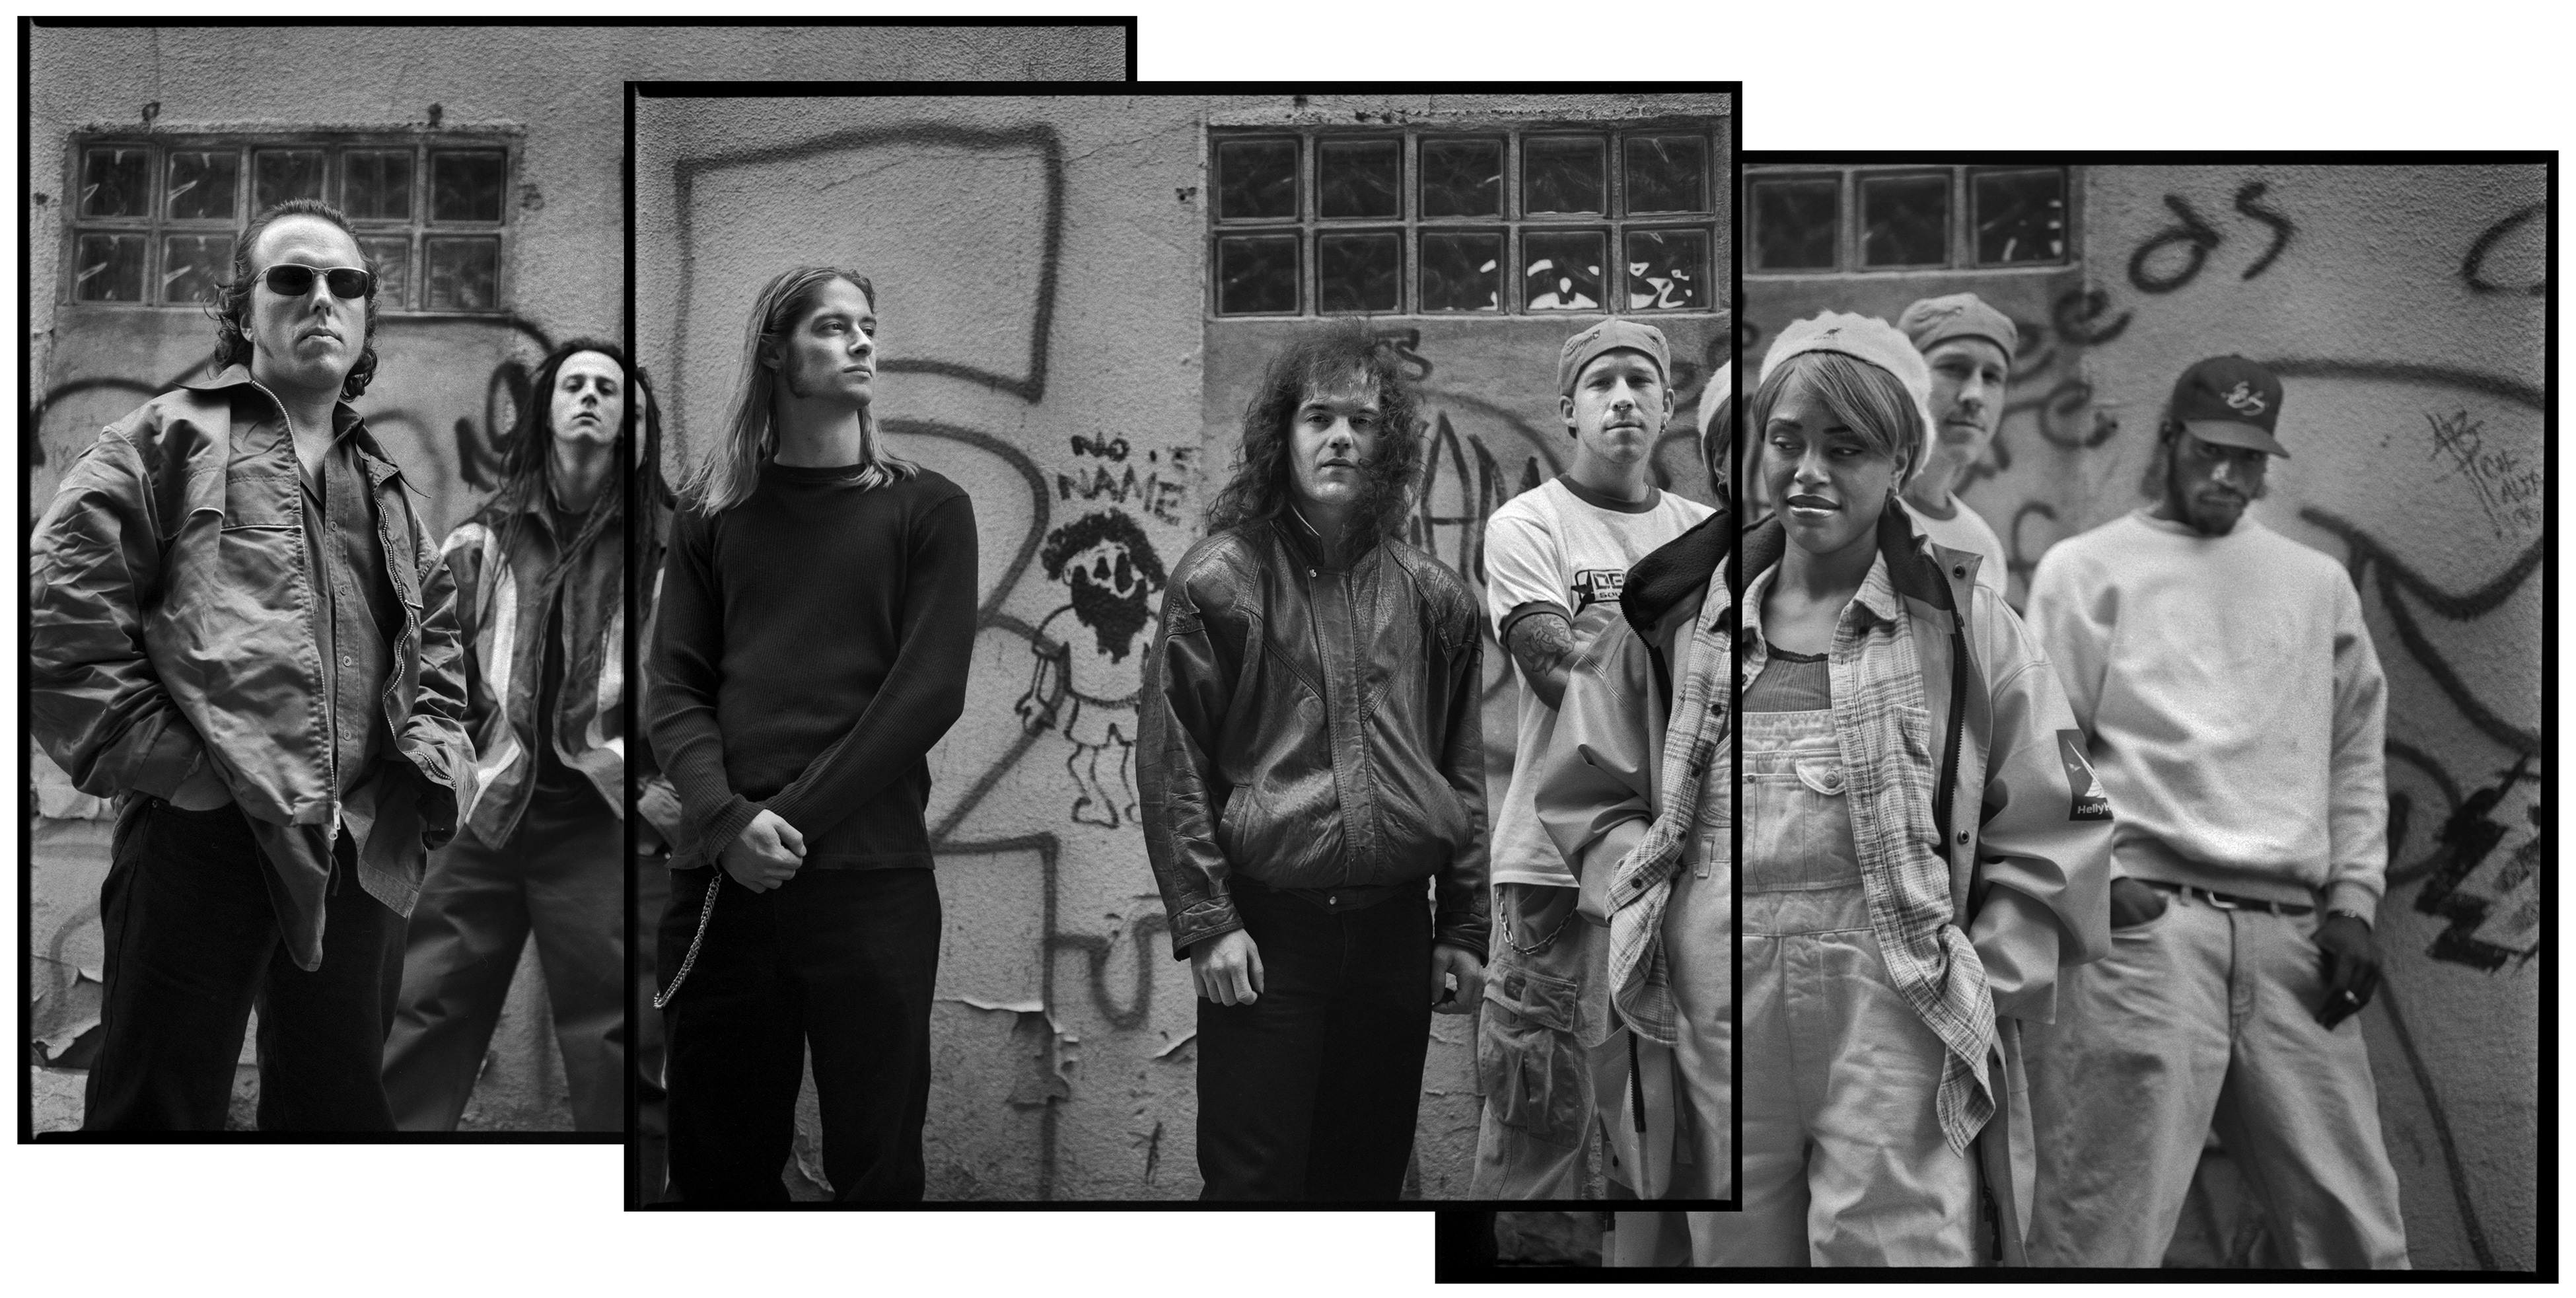 A collage of three black and white photos of seven men and a woman. They are standing in front a building covered with graffiti and with glass-block windows. The woman stands closest to the camera wearing overalls and an open jacket. The men are in casual clothing, with jackets and sweatshirts.